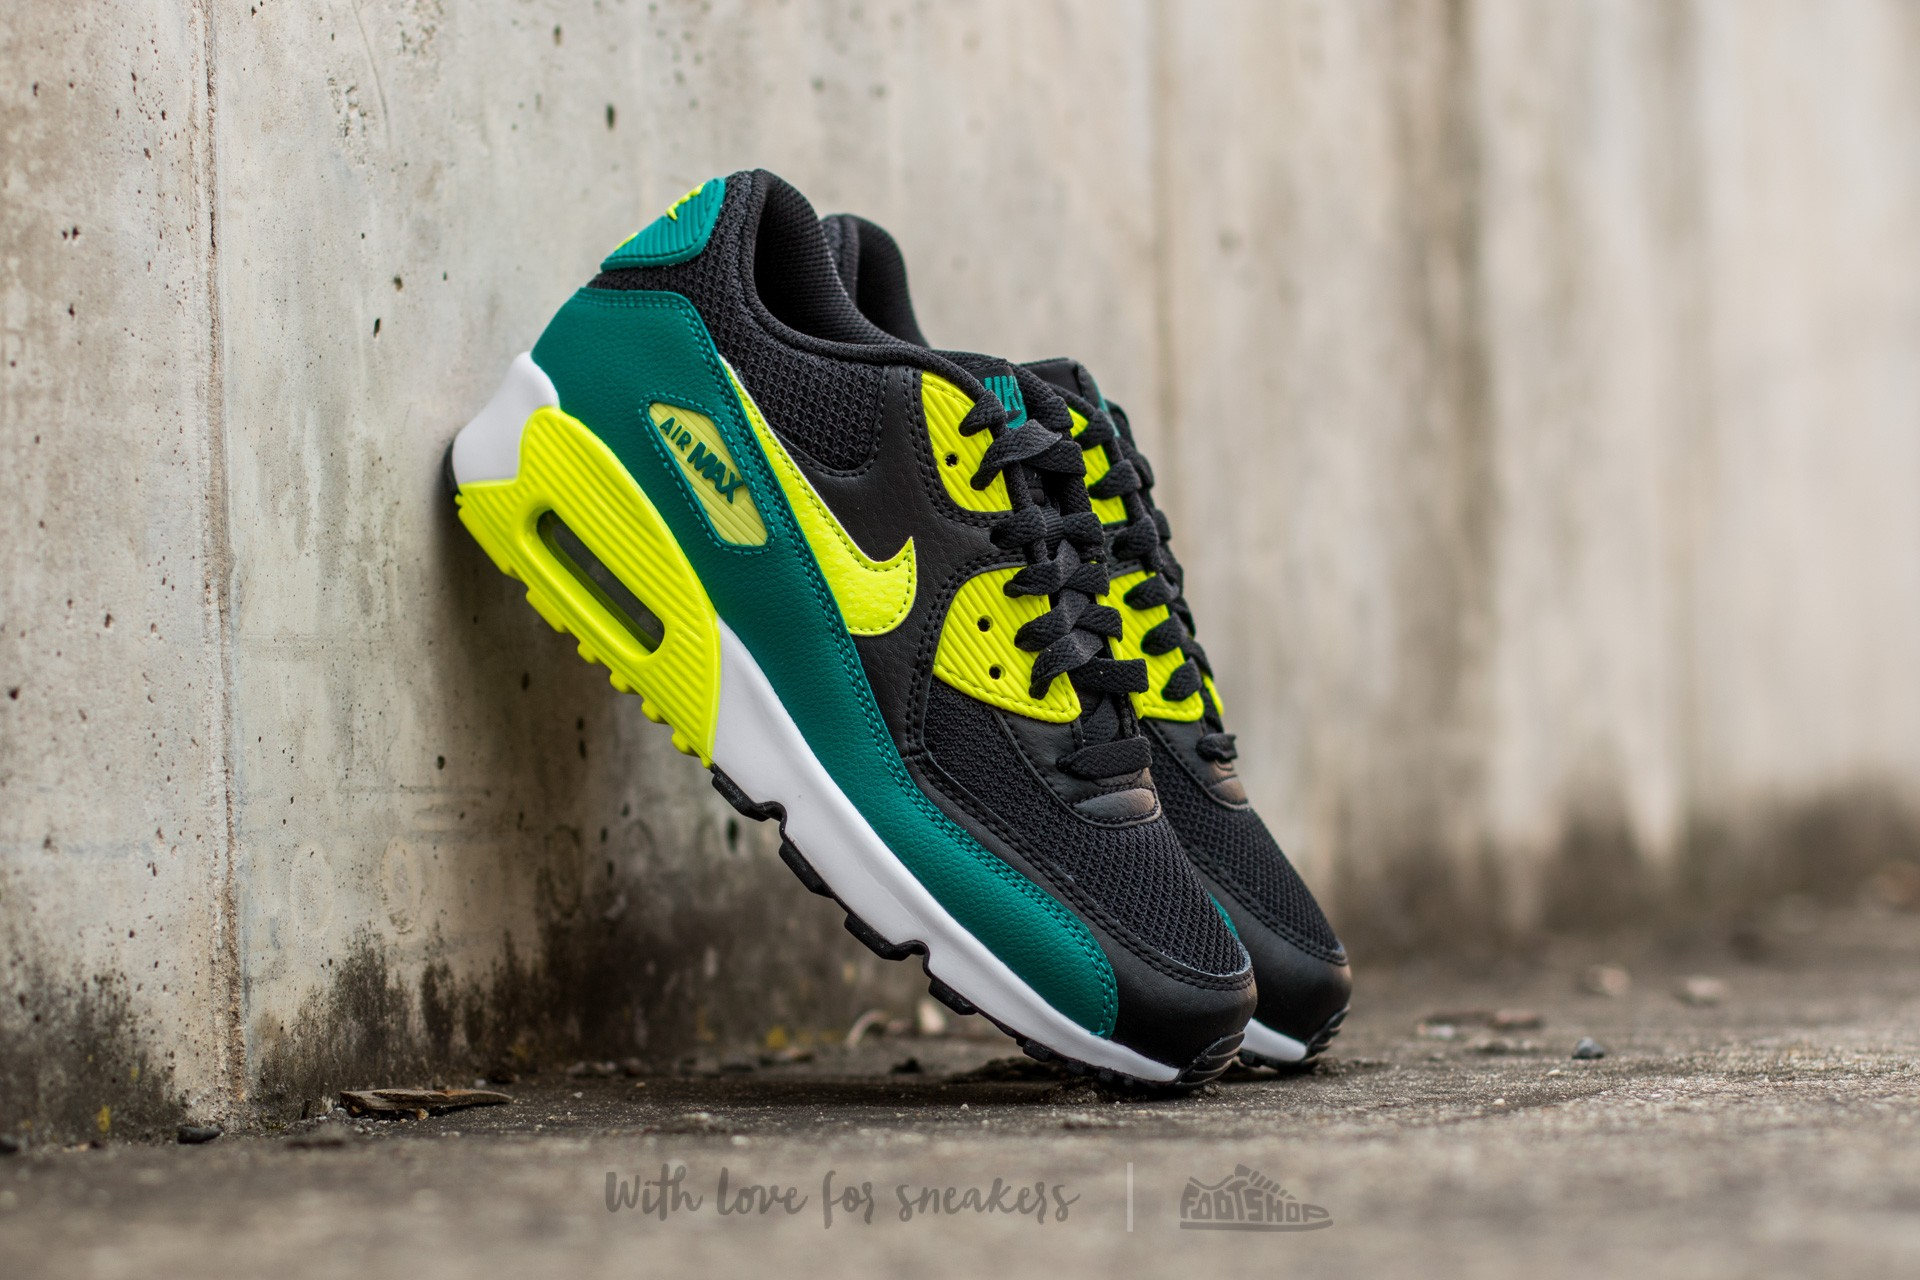 Nike Air Max 90 SE Mesh (GS) Black Black Anthracite | Footshop